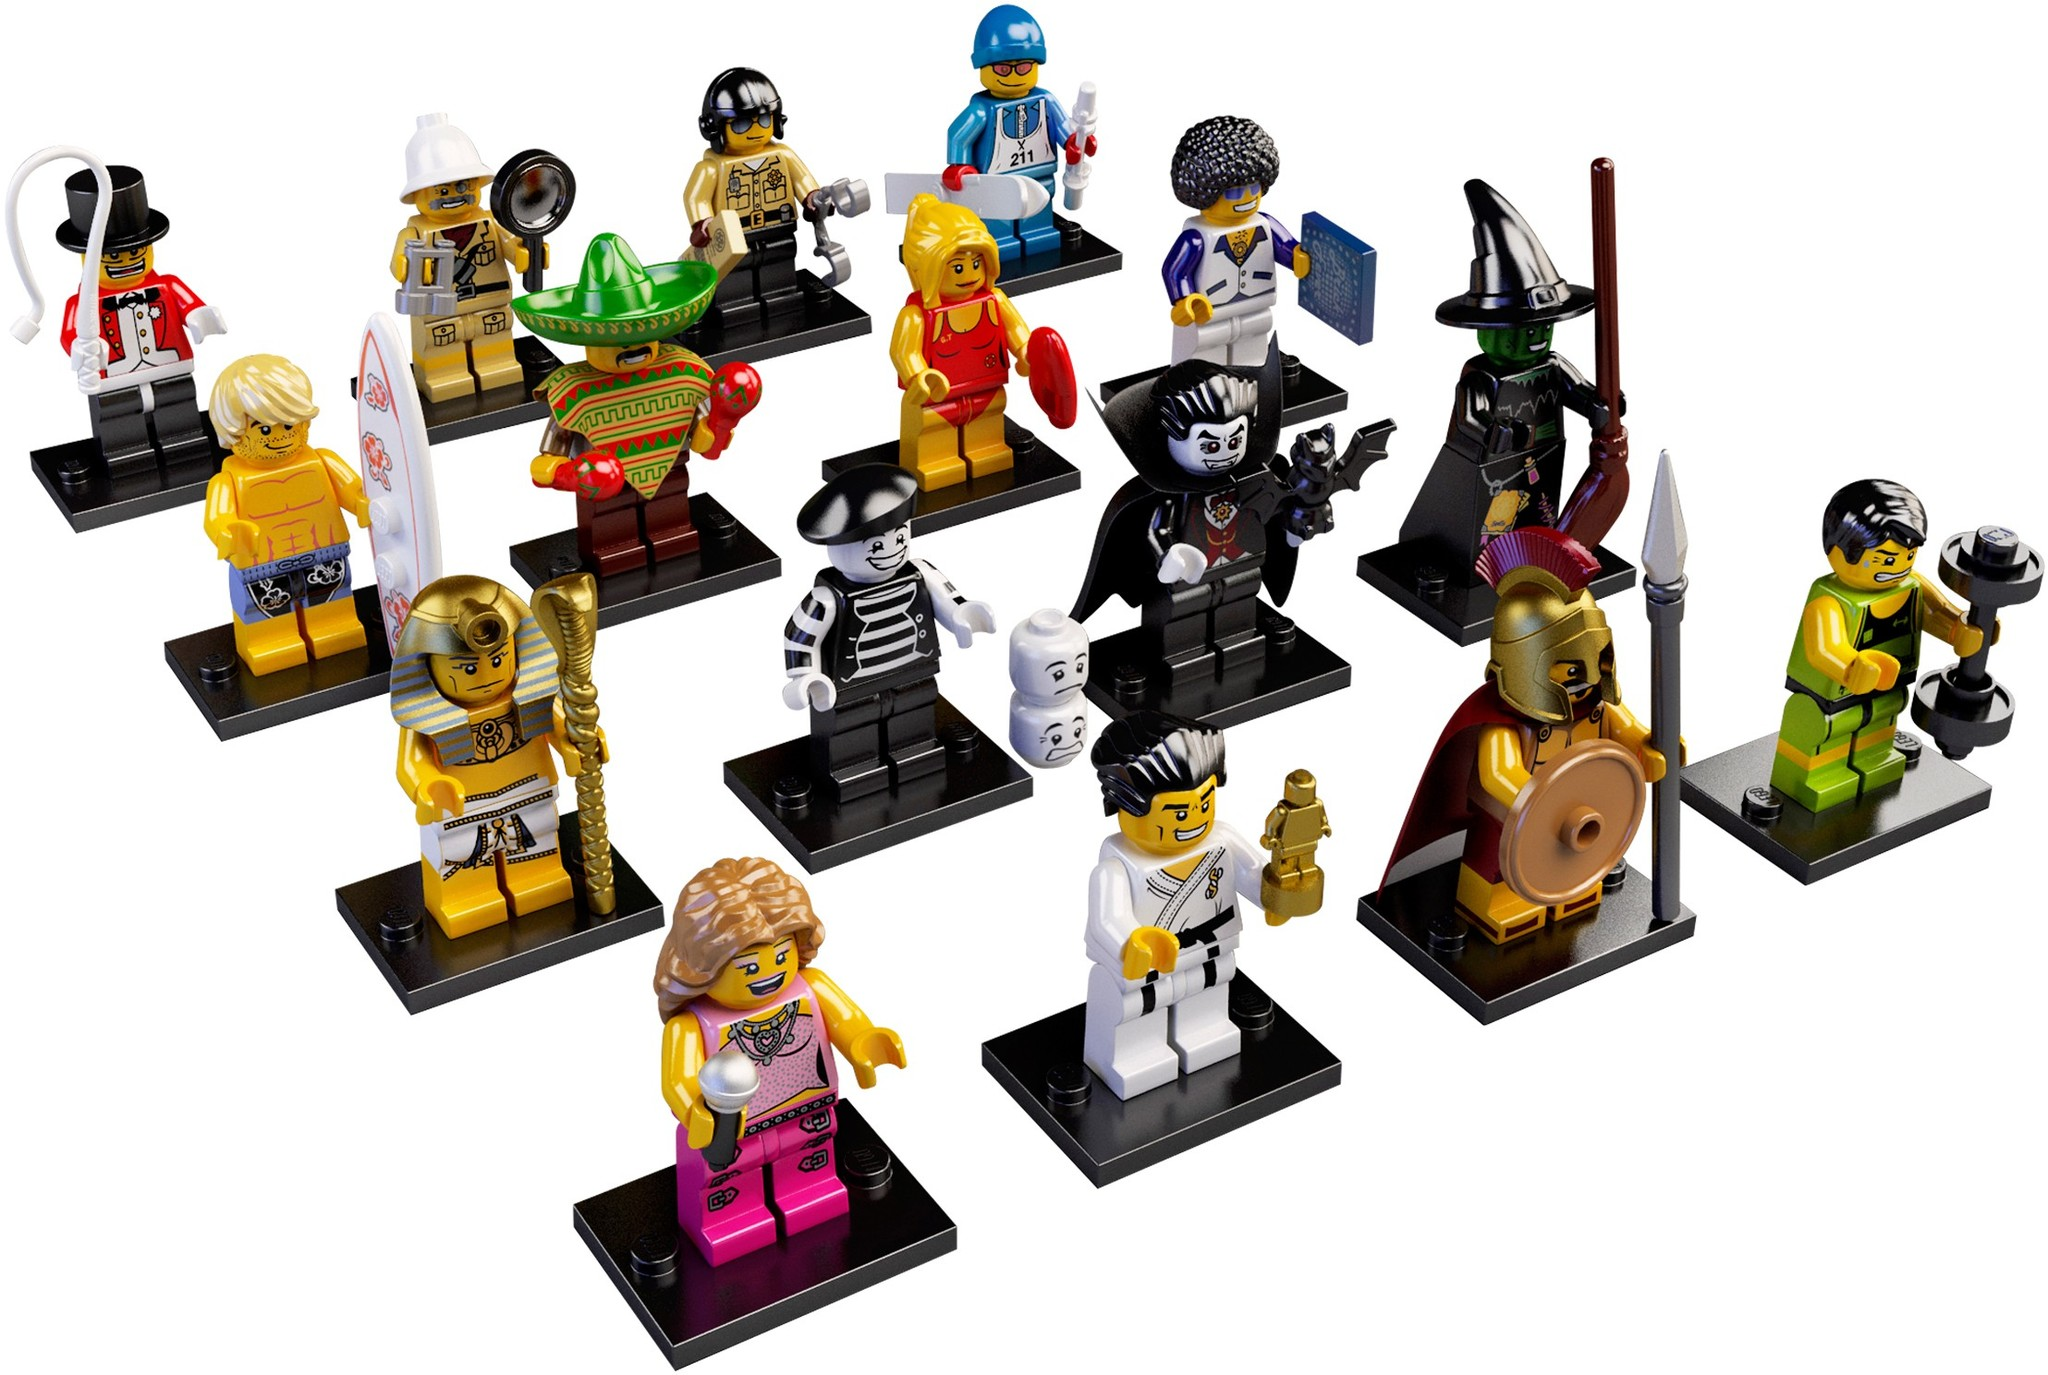 LEGO 8684 - LEGO Minifigures Series 2 Complete Full Set (16 pcs) MISP